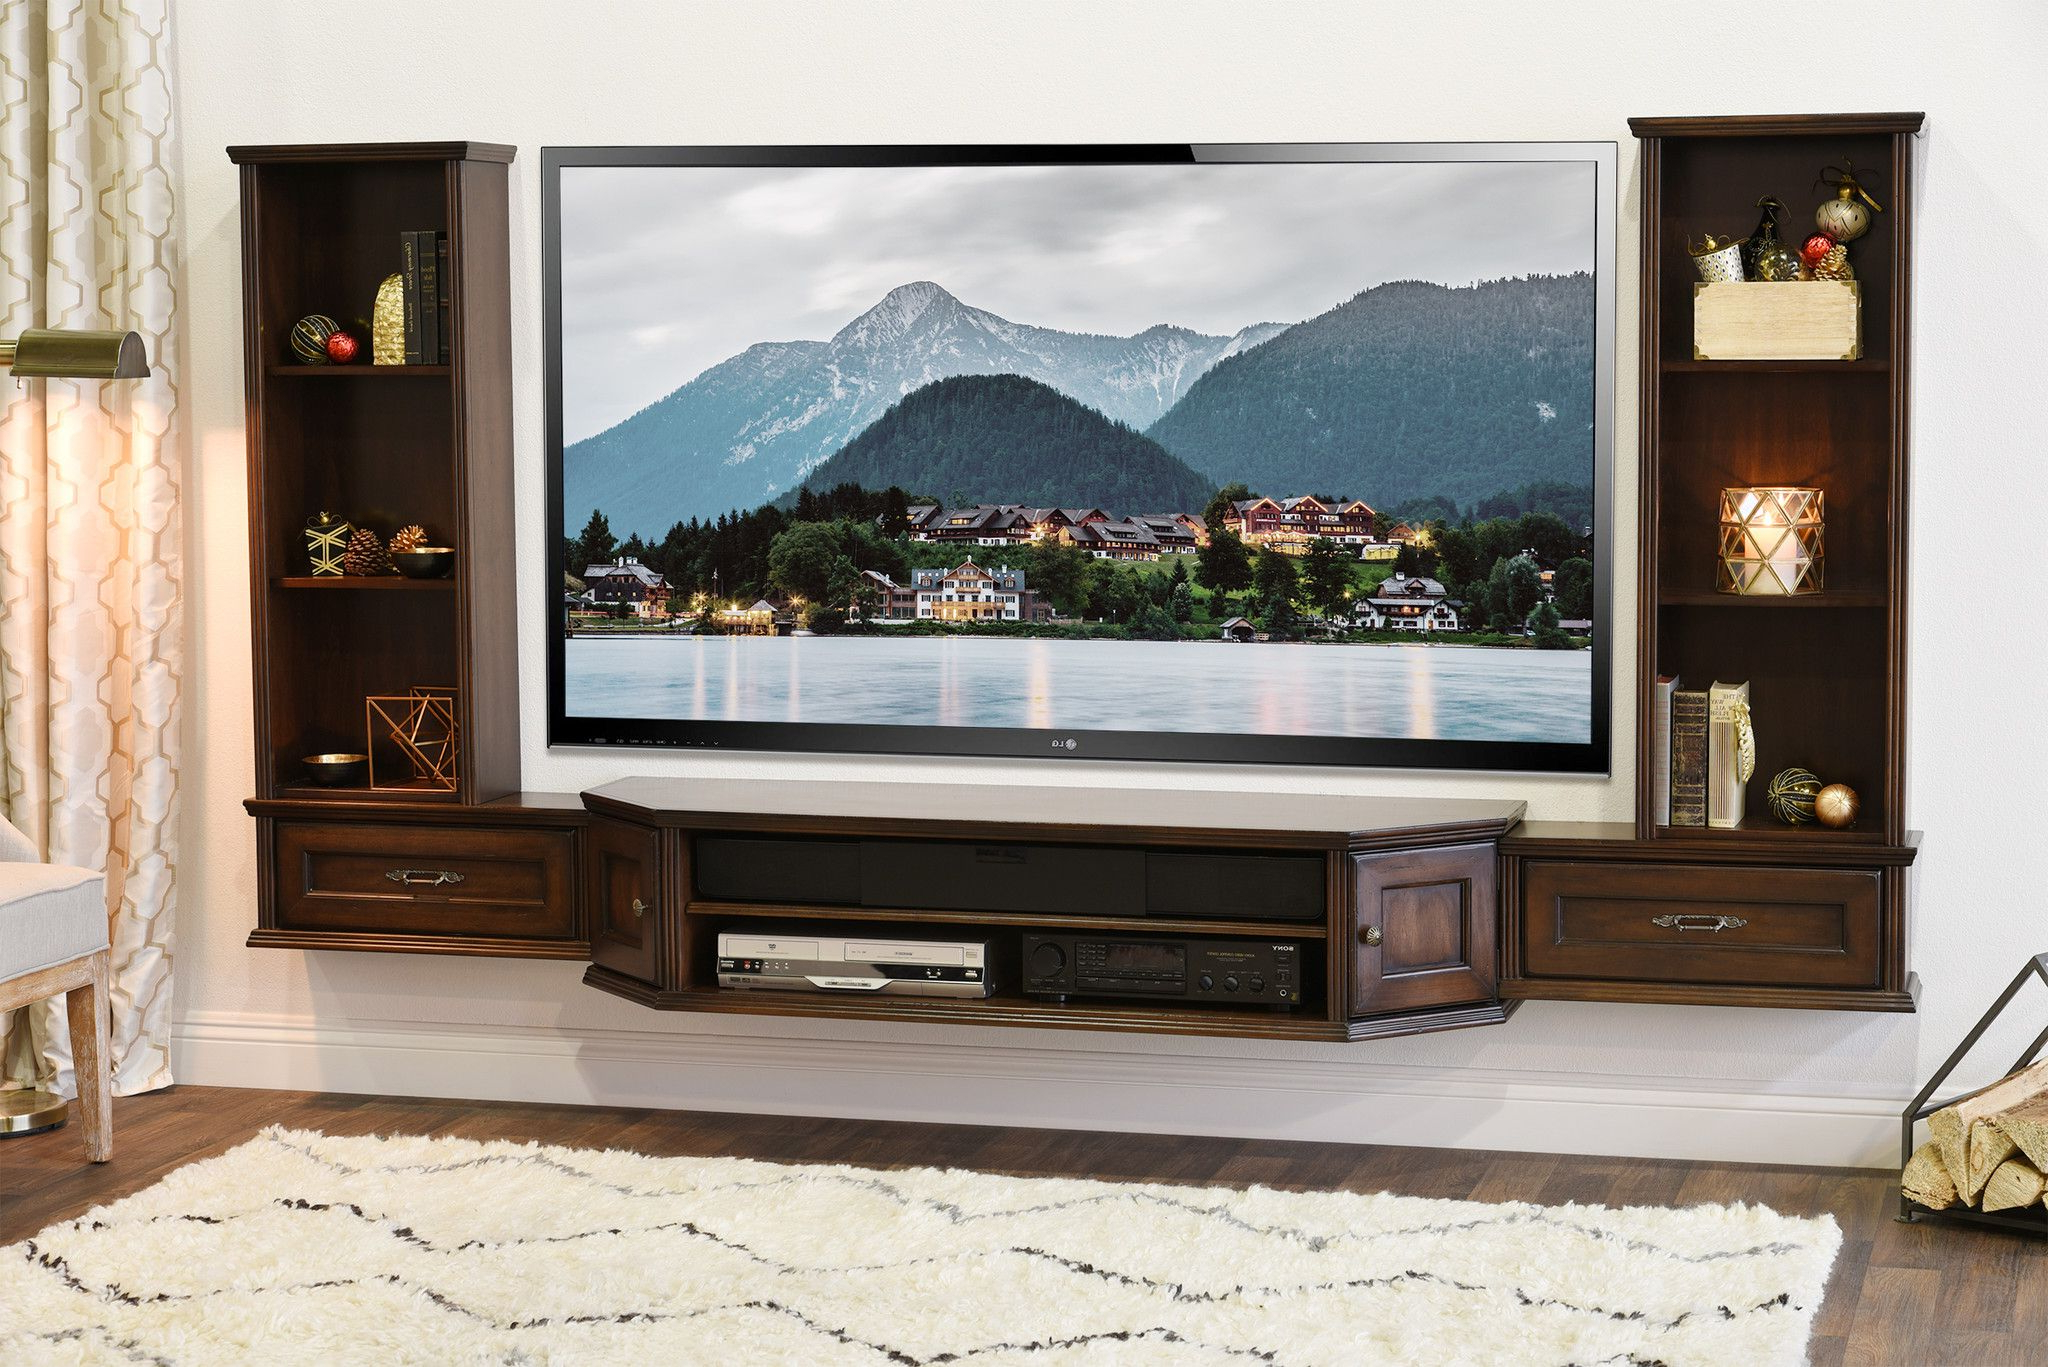 Transitional Wall Mount Tv Stand – Vintage – 3 Piece Pertaining To Whalen Shelf Tv Stands With Floater Mount In Weathered Dark Pine Finish (View 9 of 20)